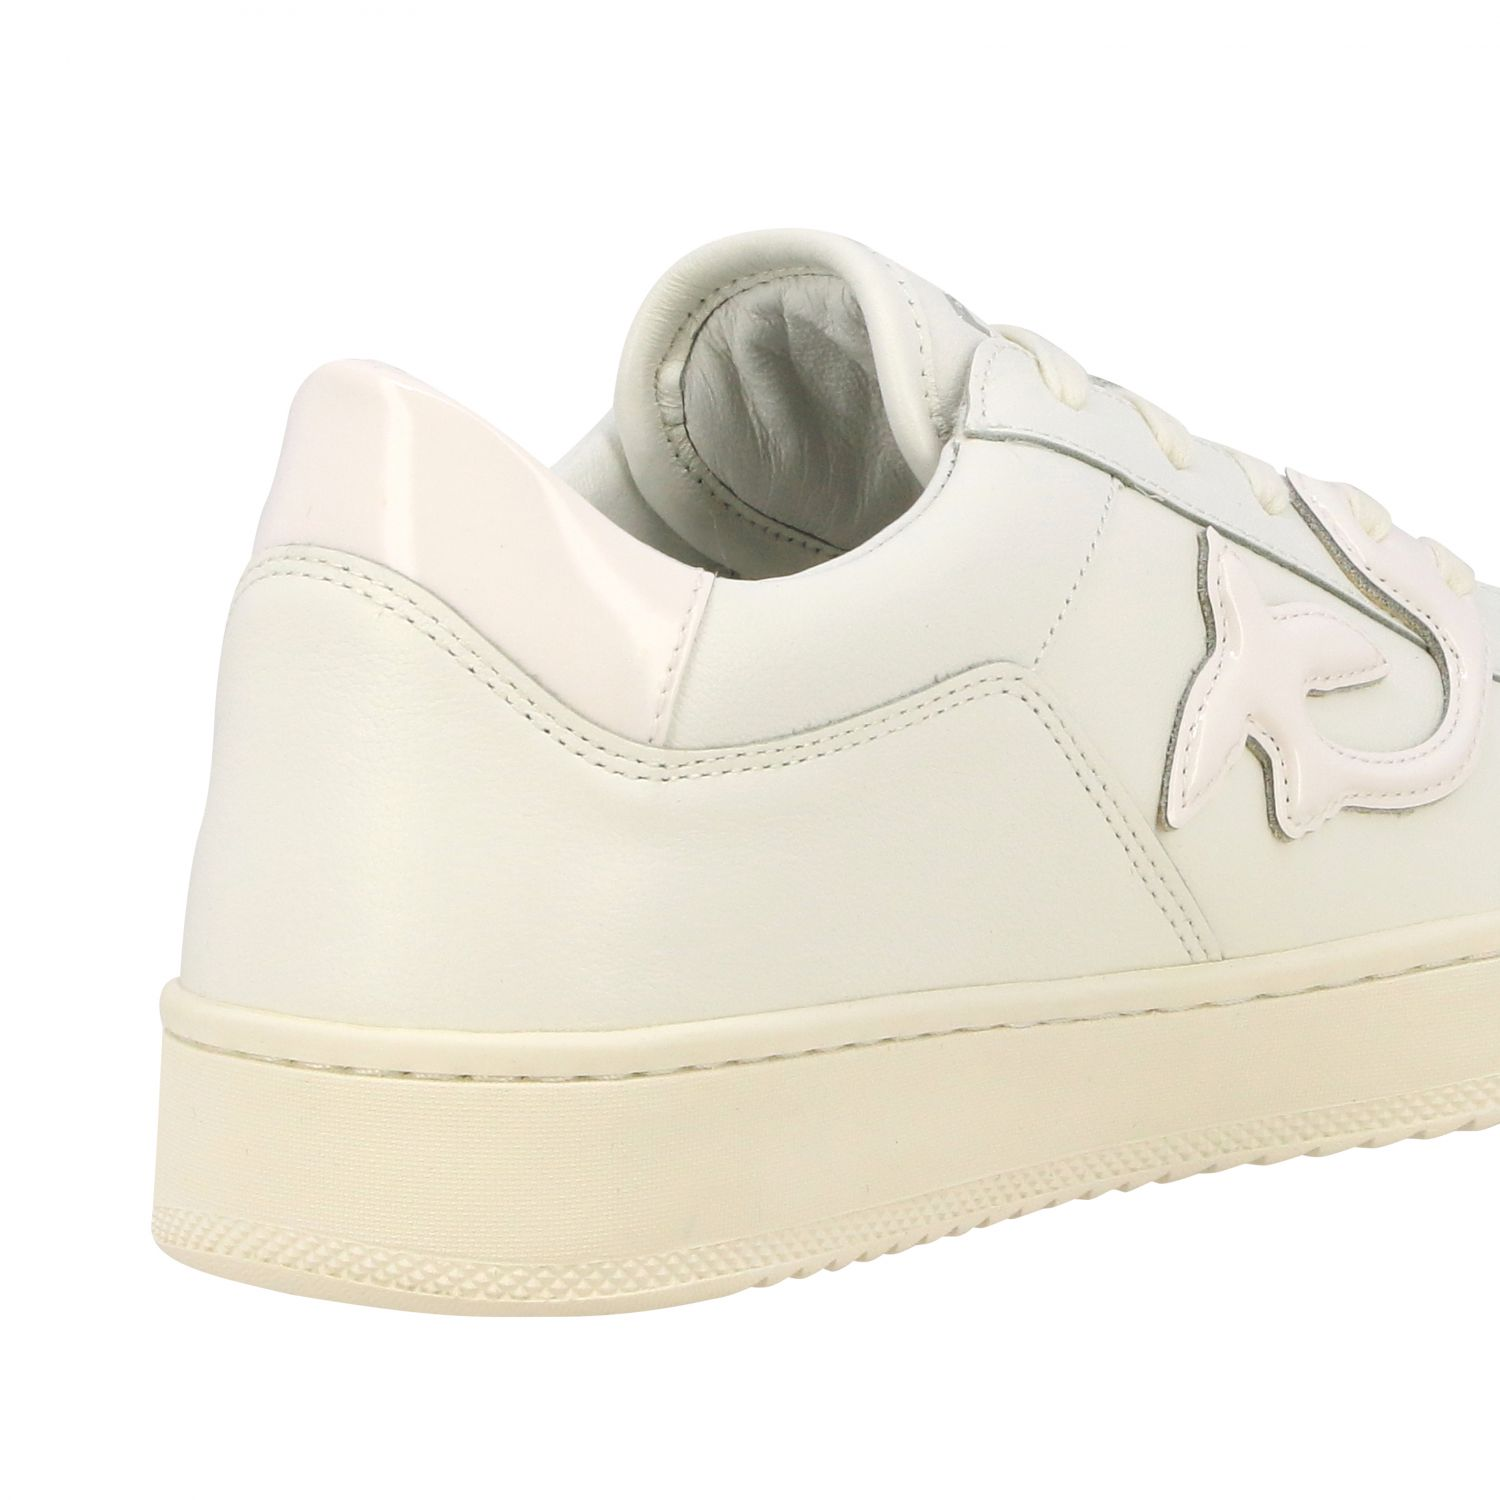 Shoes women Pinko white 5